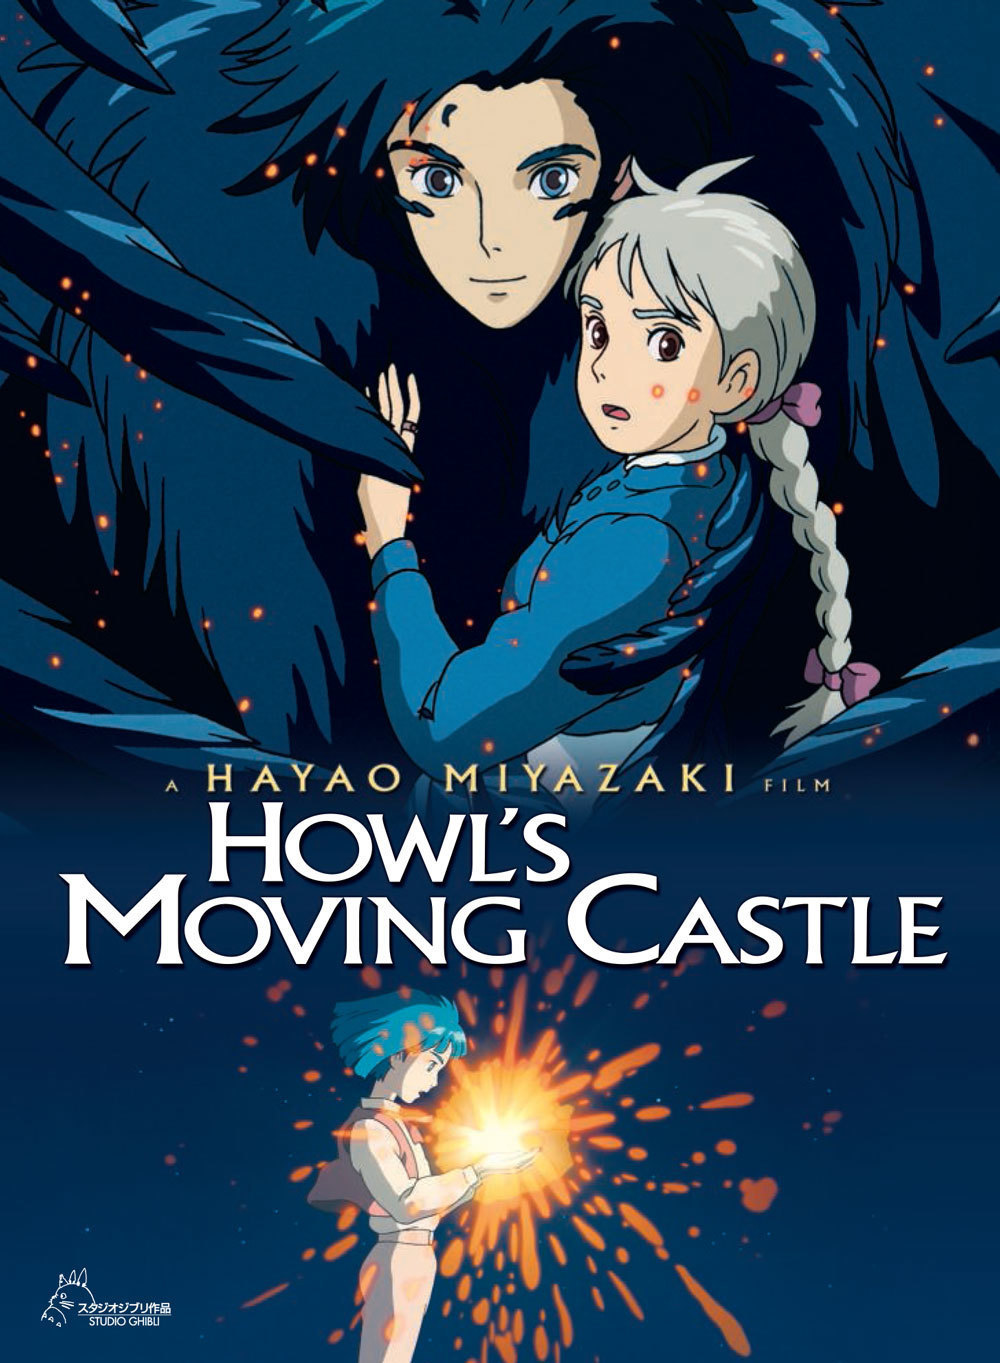 Howls moving castle download bittorrent